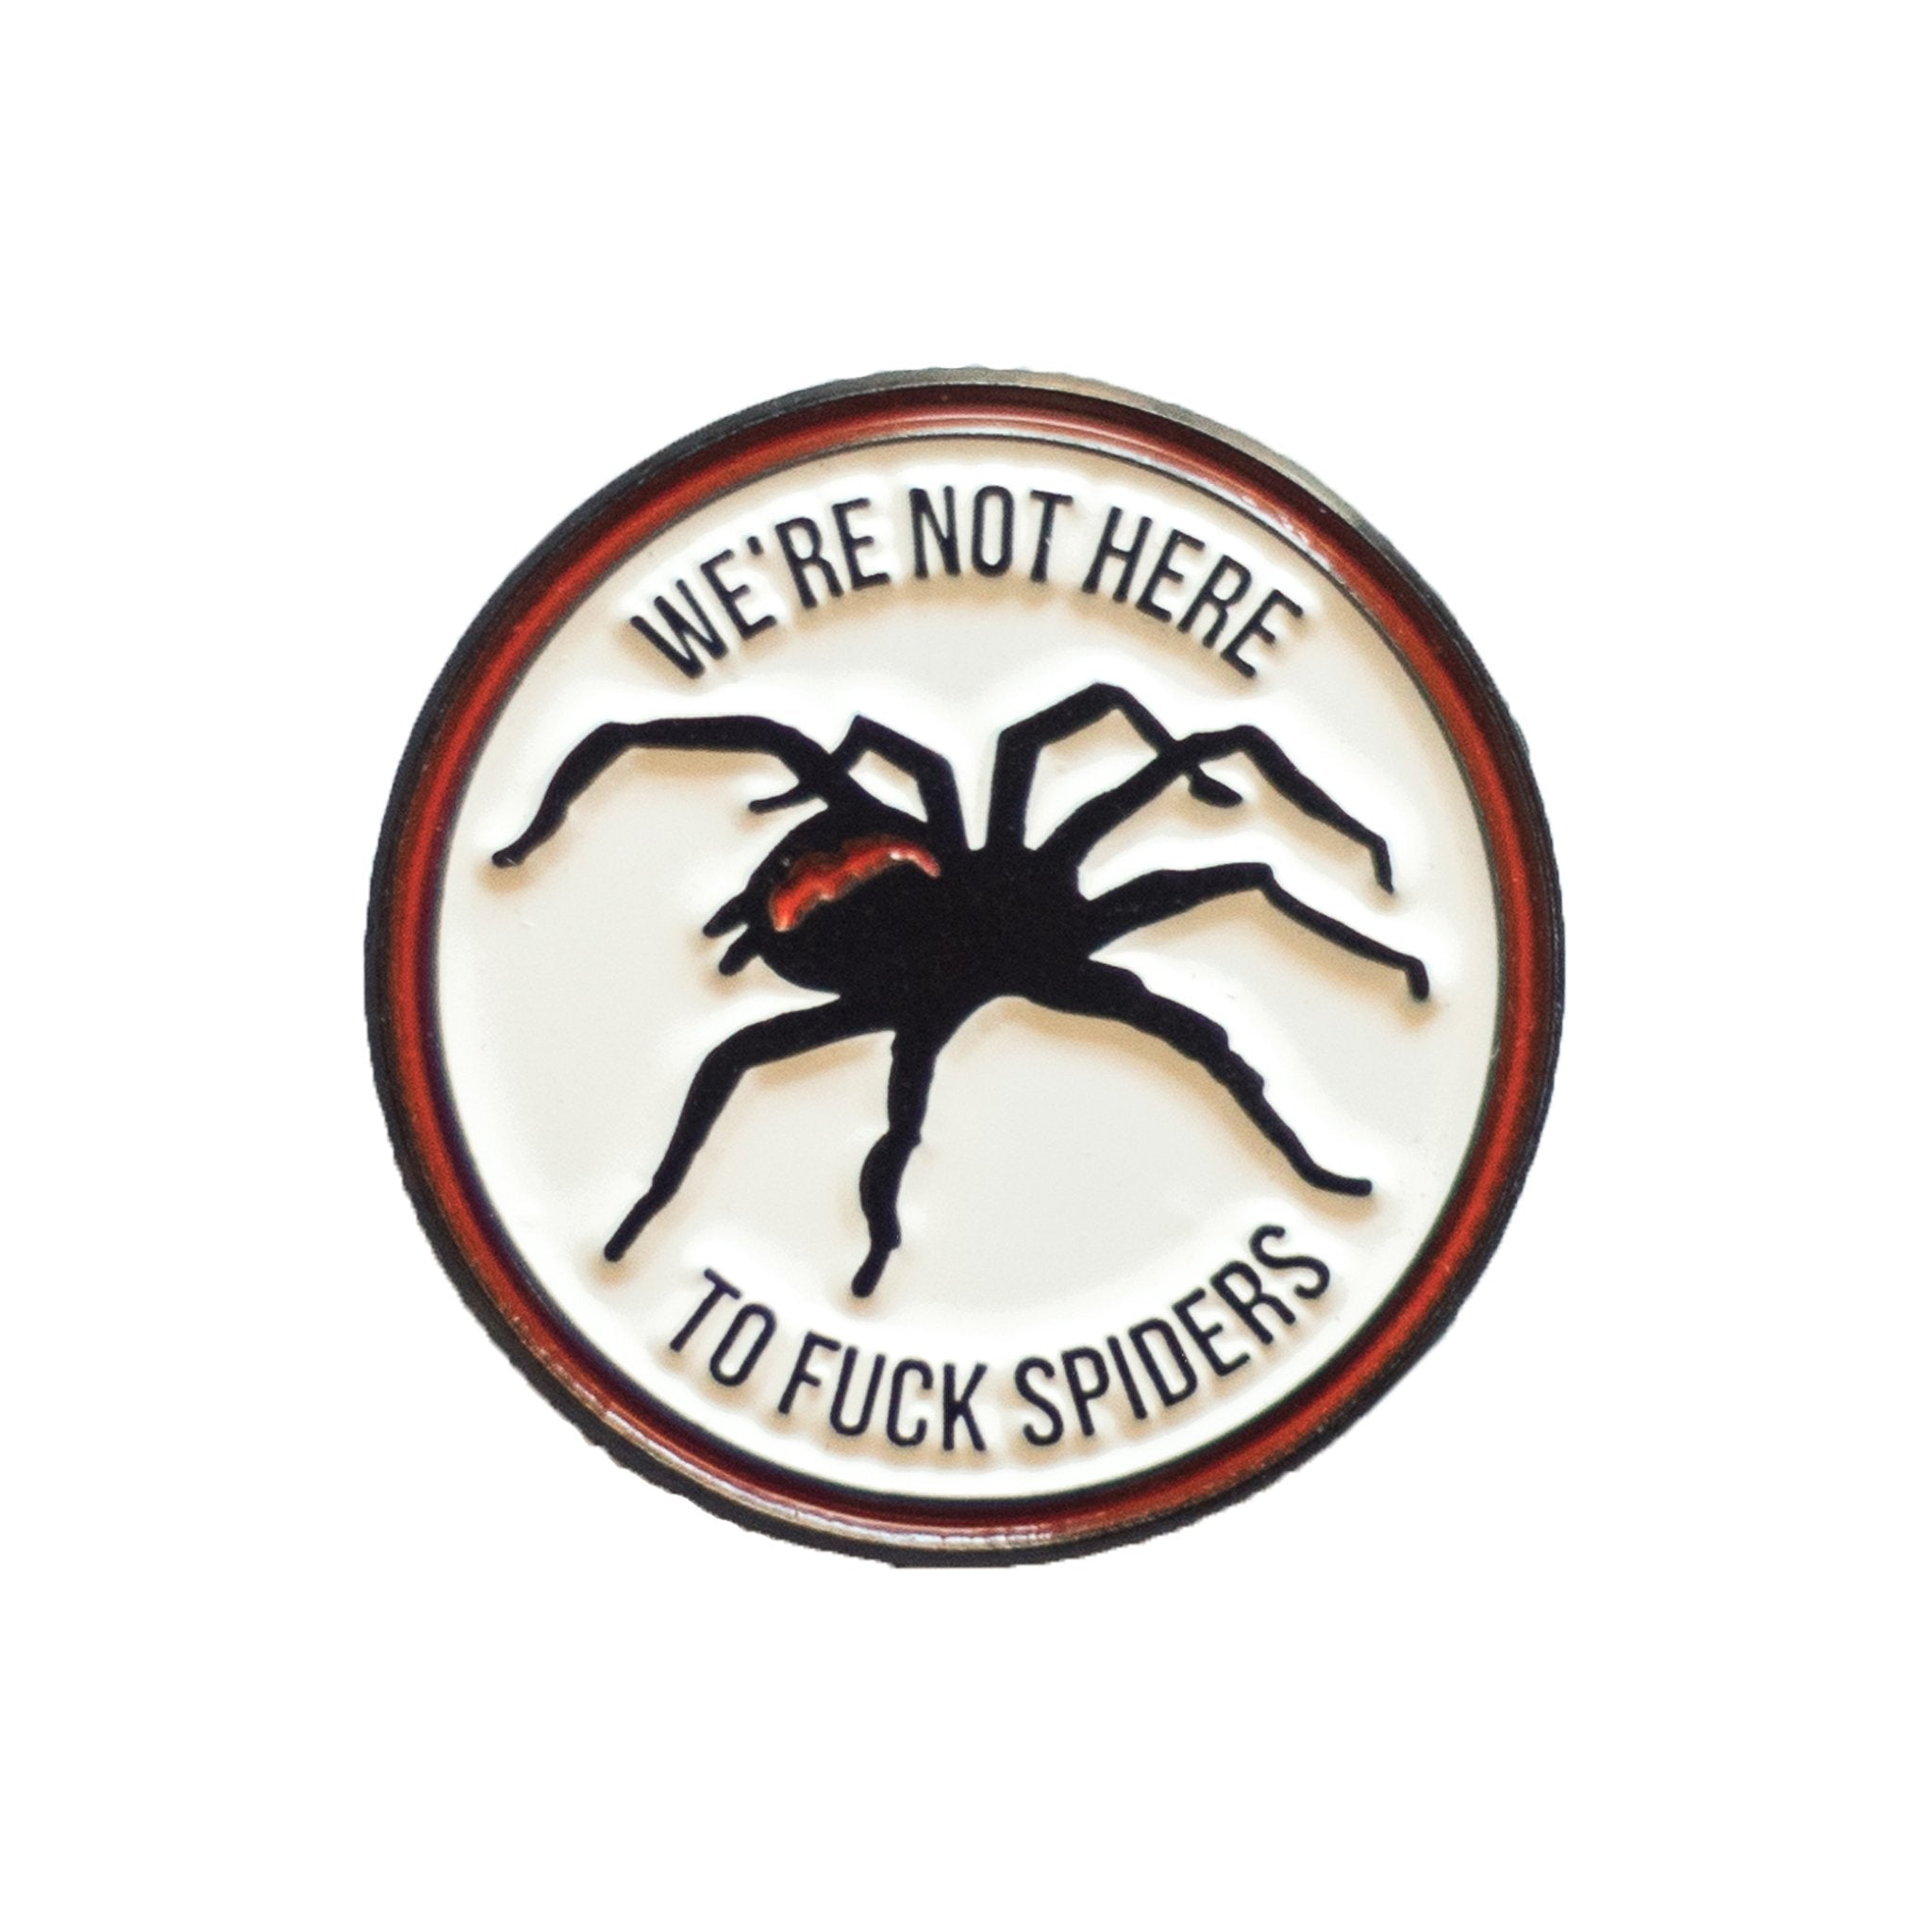 BLC - We're Not Here to Fuck Spiders Pin